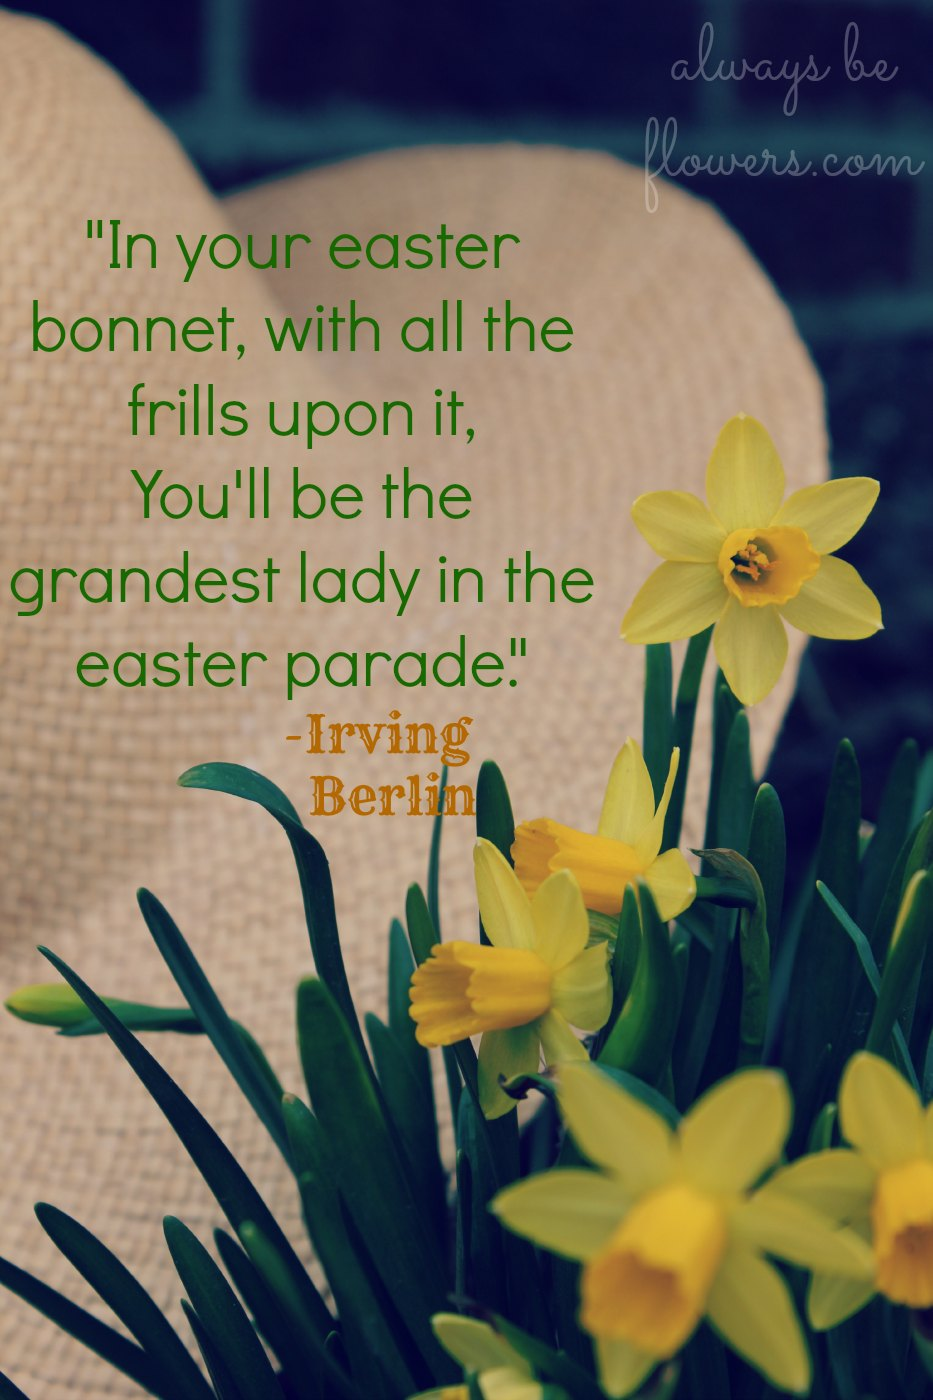 easter-bonnet-irving-berlin.jpg